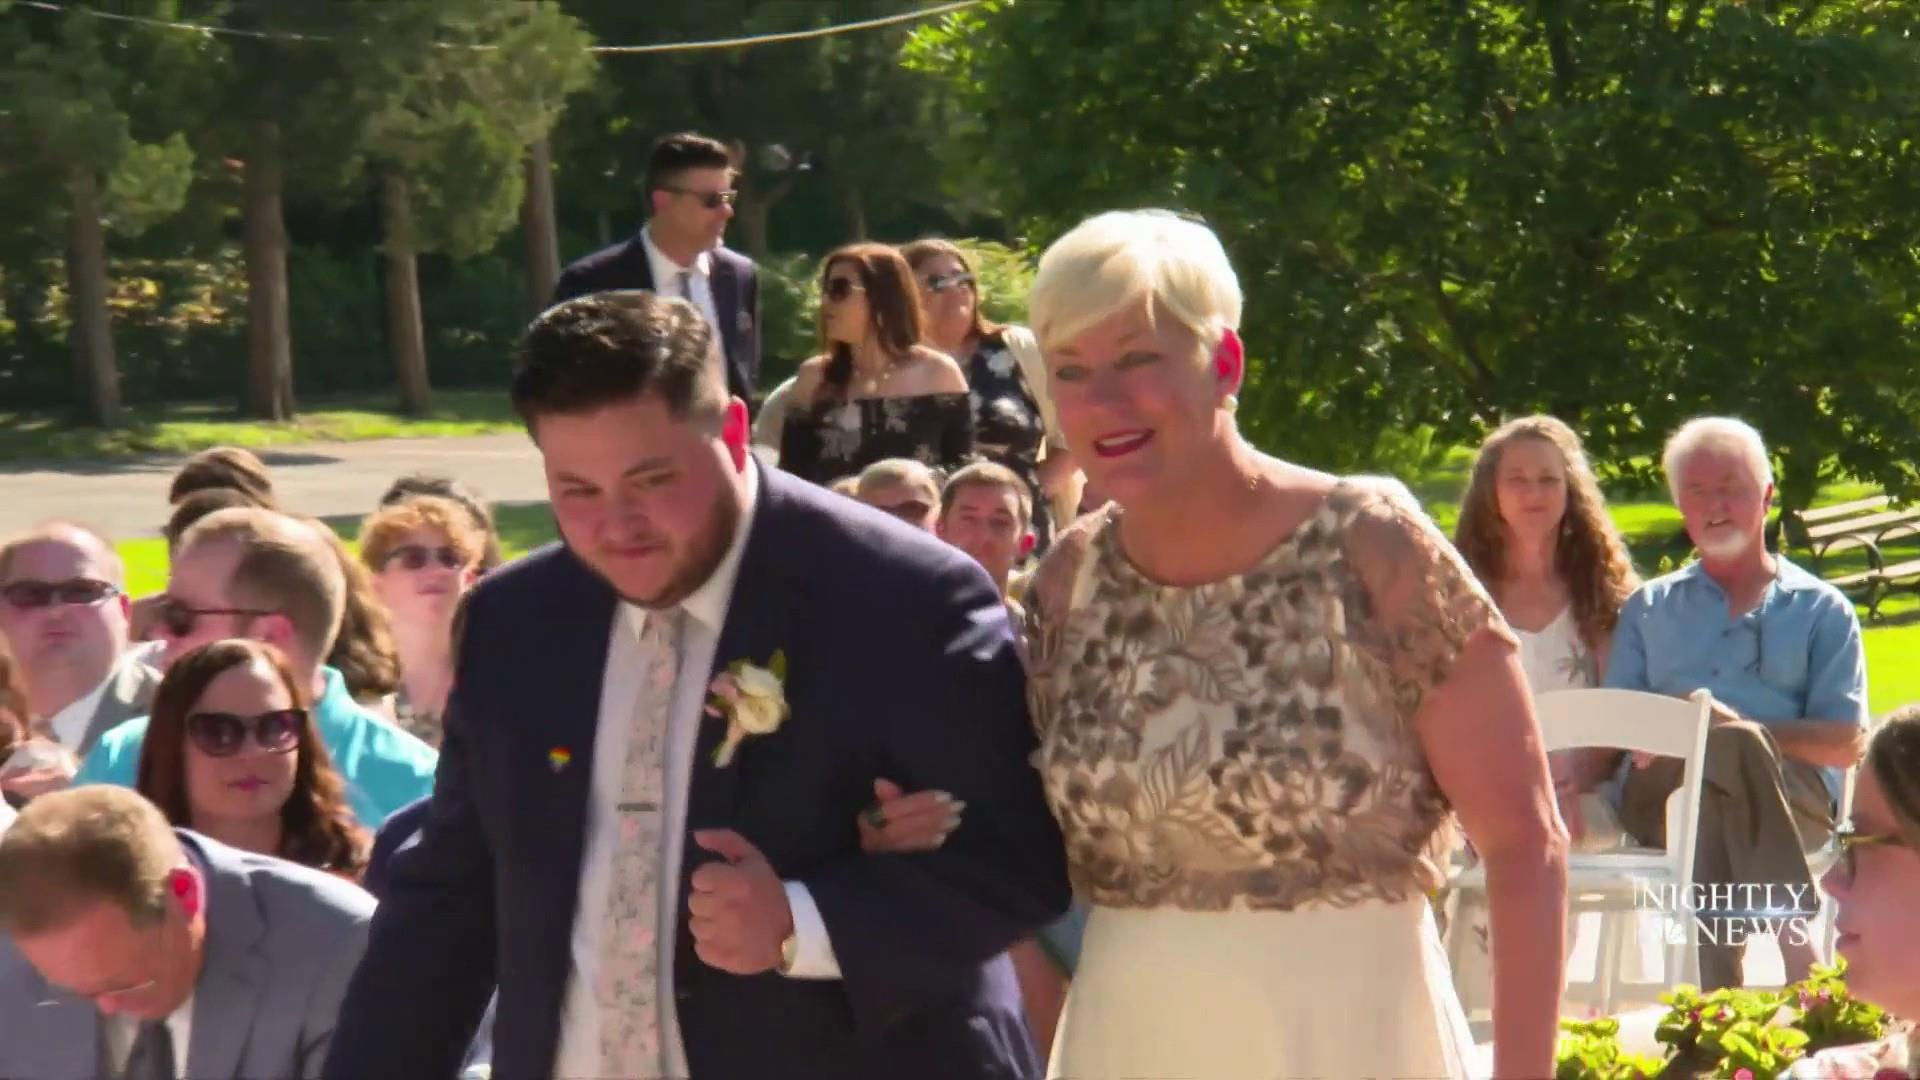 Meet the mom who offers to be a stand-in parent at LGBTQ+ weddings